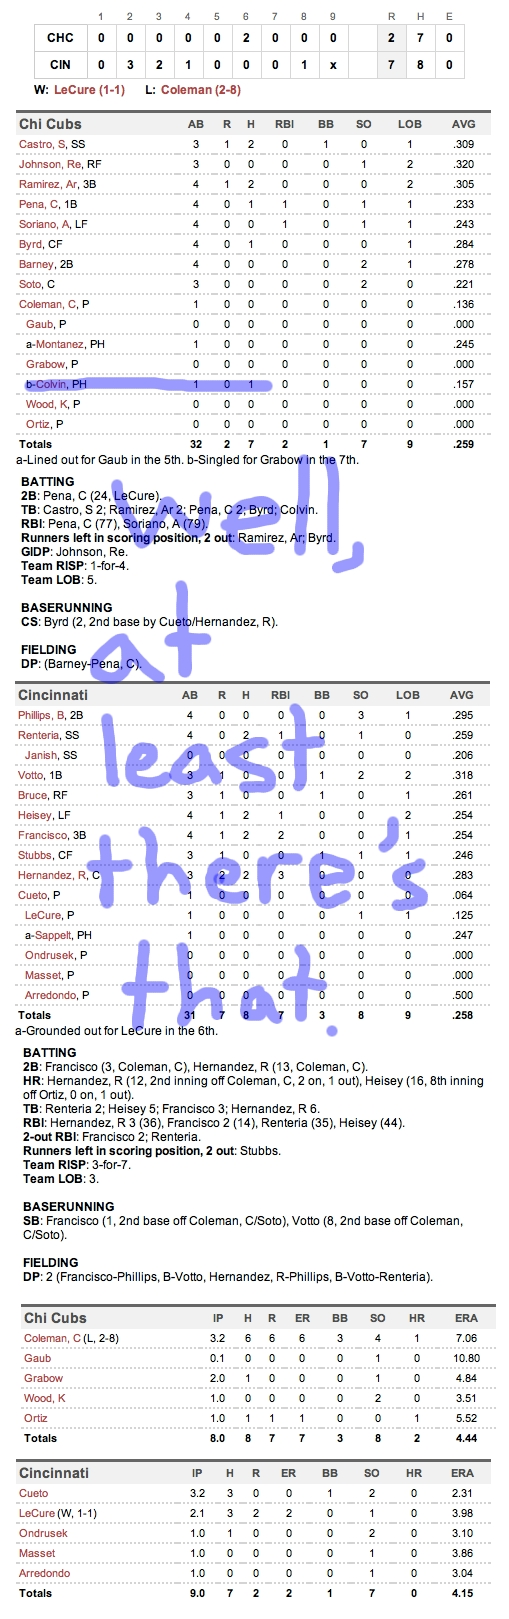 Enhanced Box Score: Cubs 2, Reds 7 – September 14, 2011